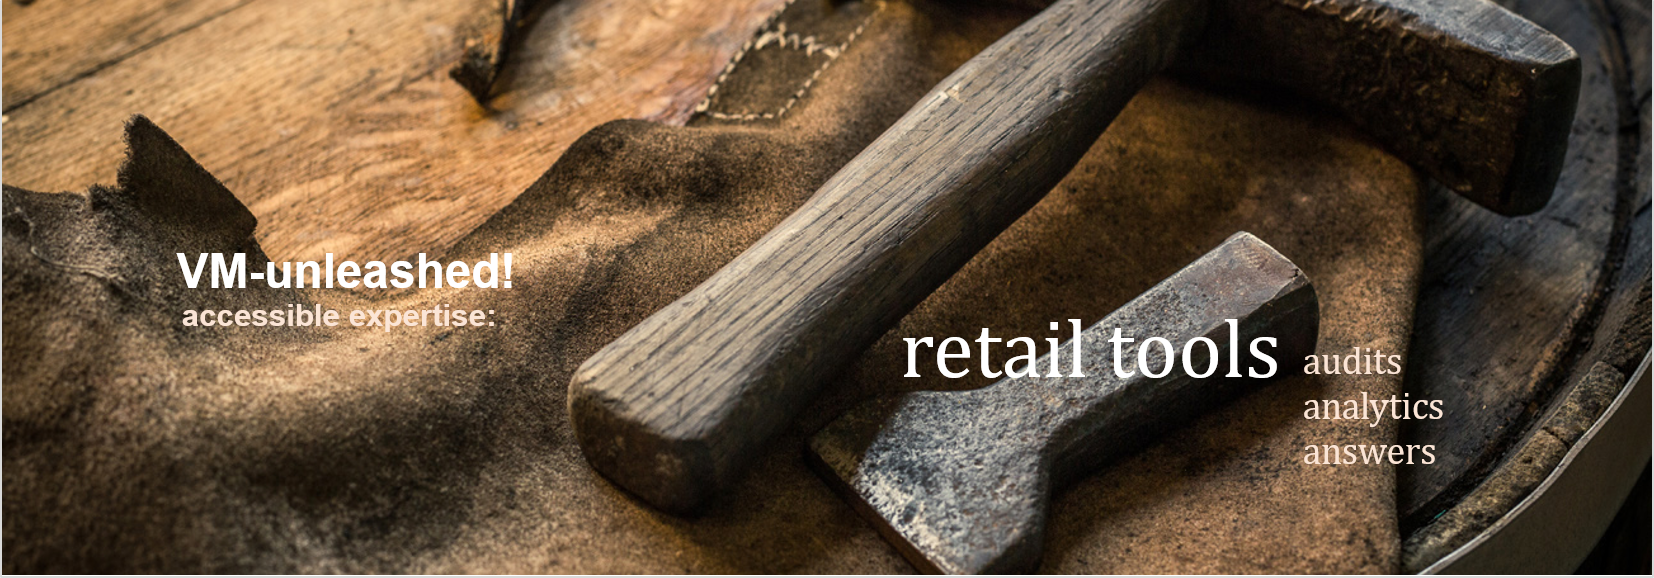 vm-unleashed-accessible expertise-retail-tools